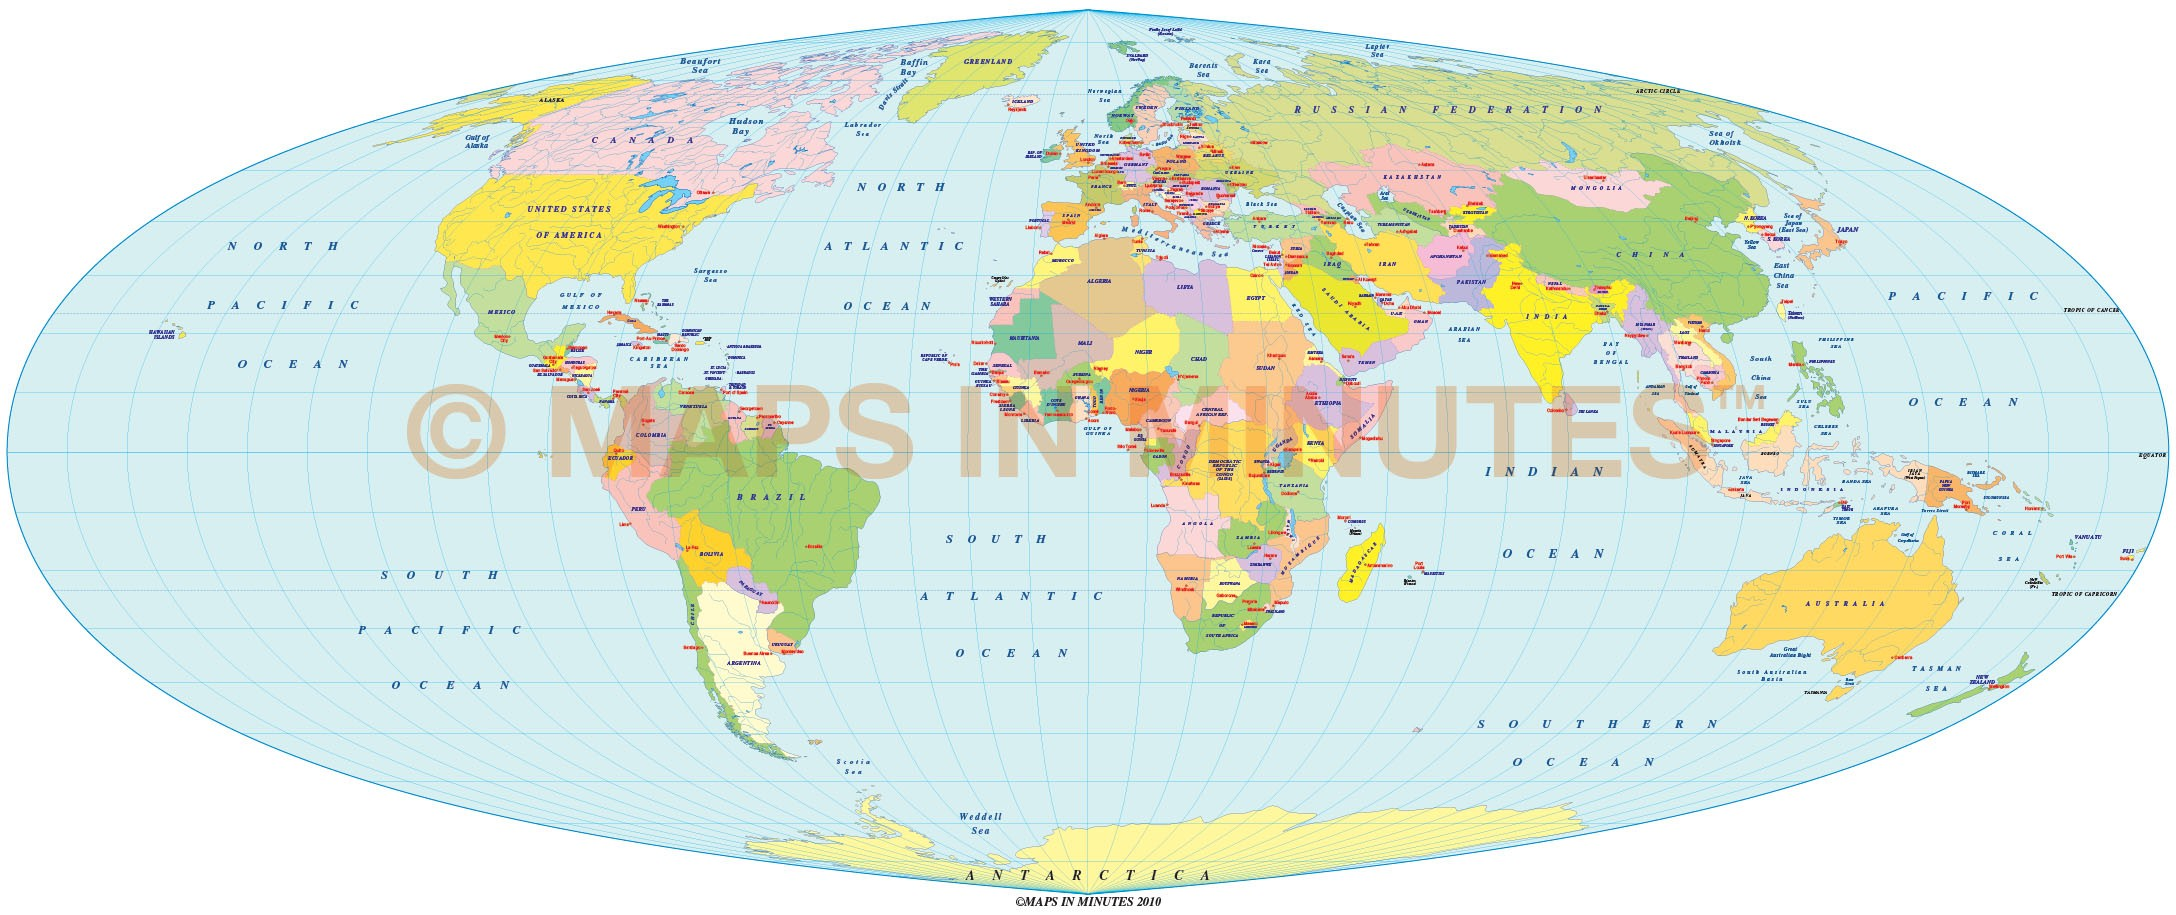 Vector world political map in the foucaut equal area projection uk foucaut equal area projection 100m uk centric political world map gumiabroncs Choice Image